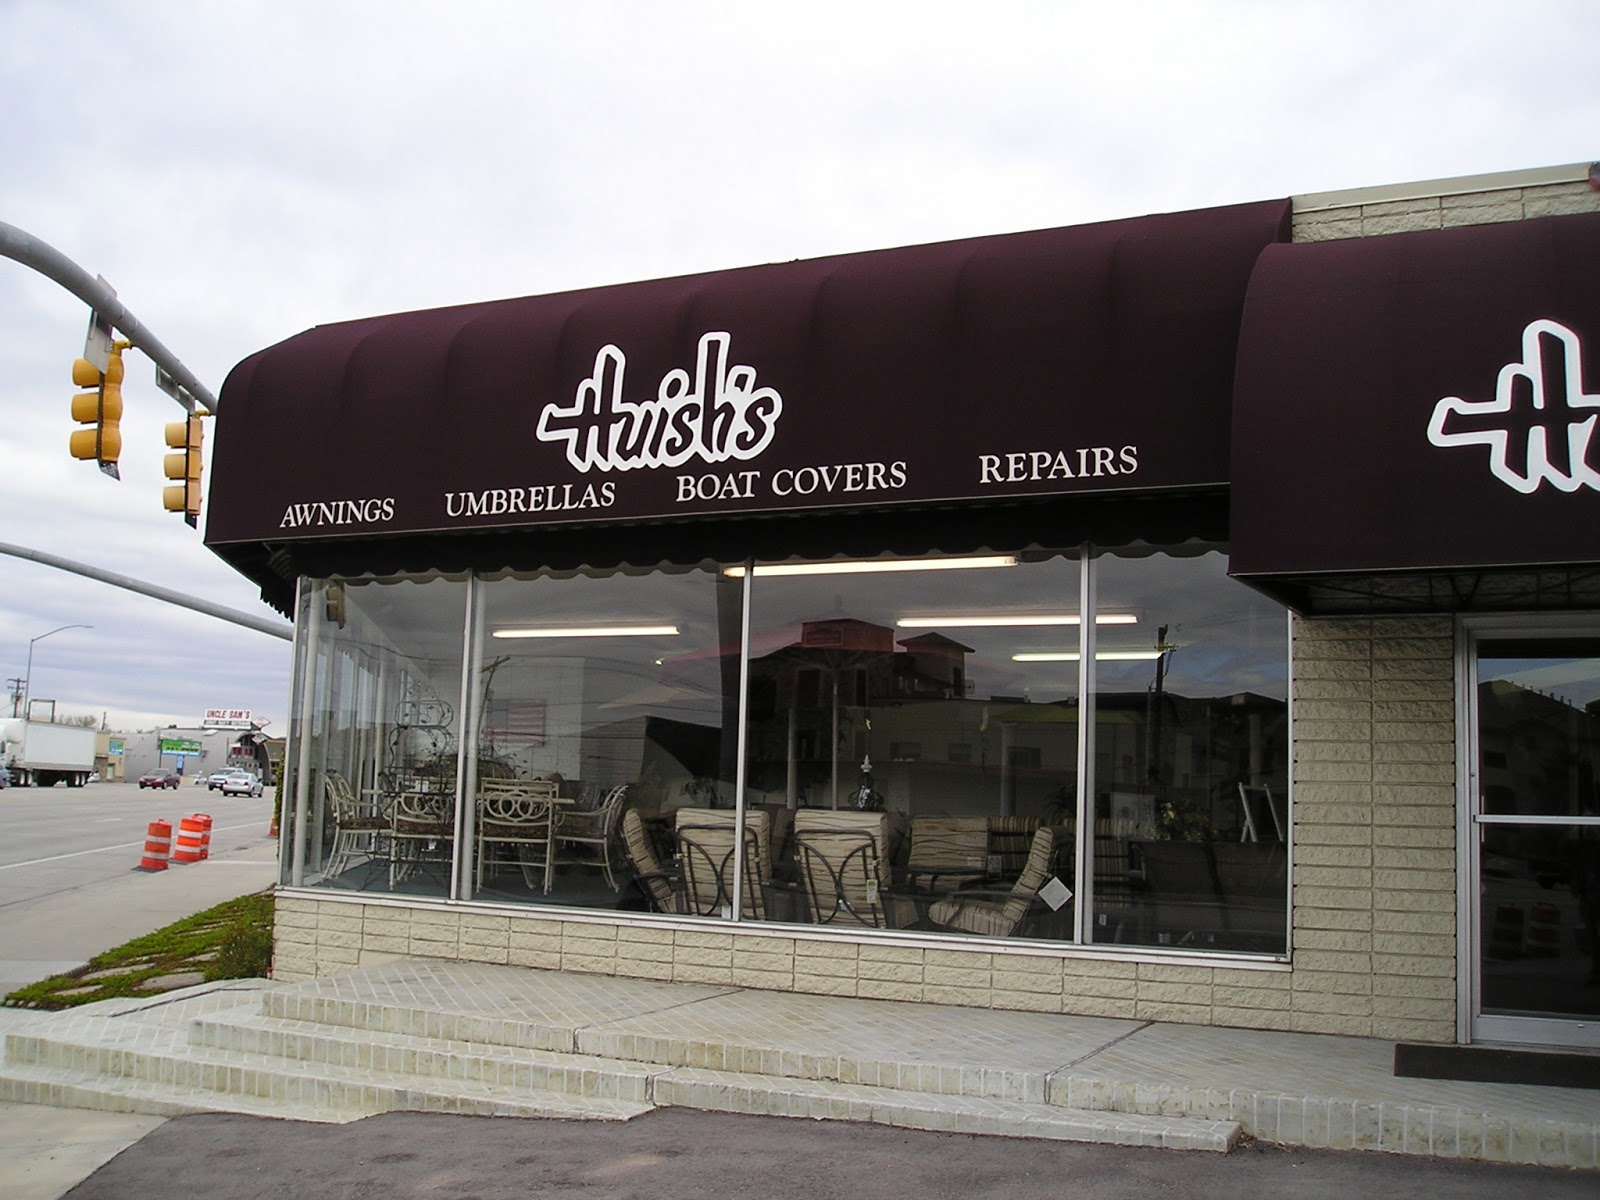 Huish's - Awnings, Pergolas & More! - Serving Utah Since 1939!